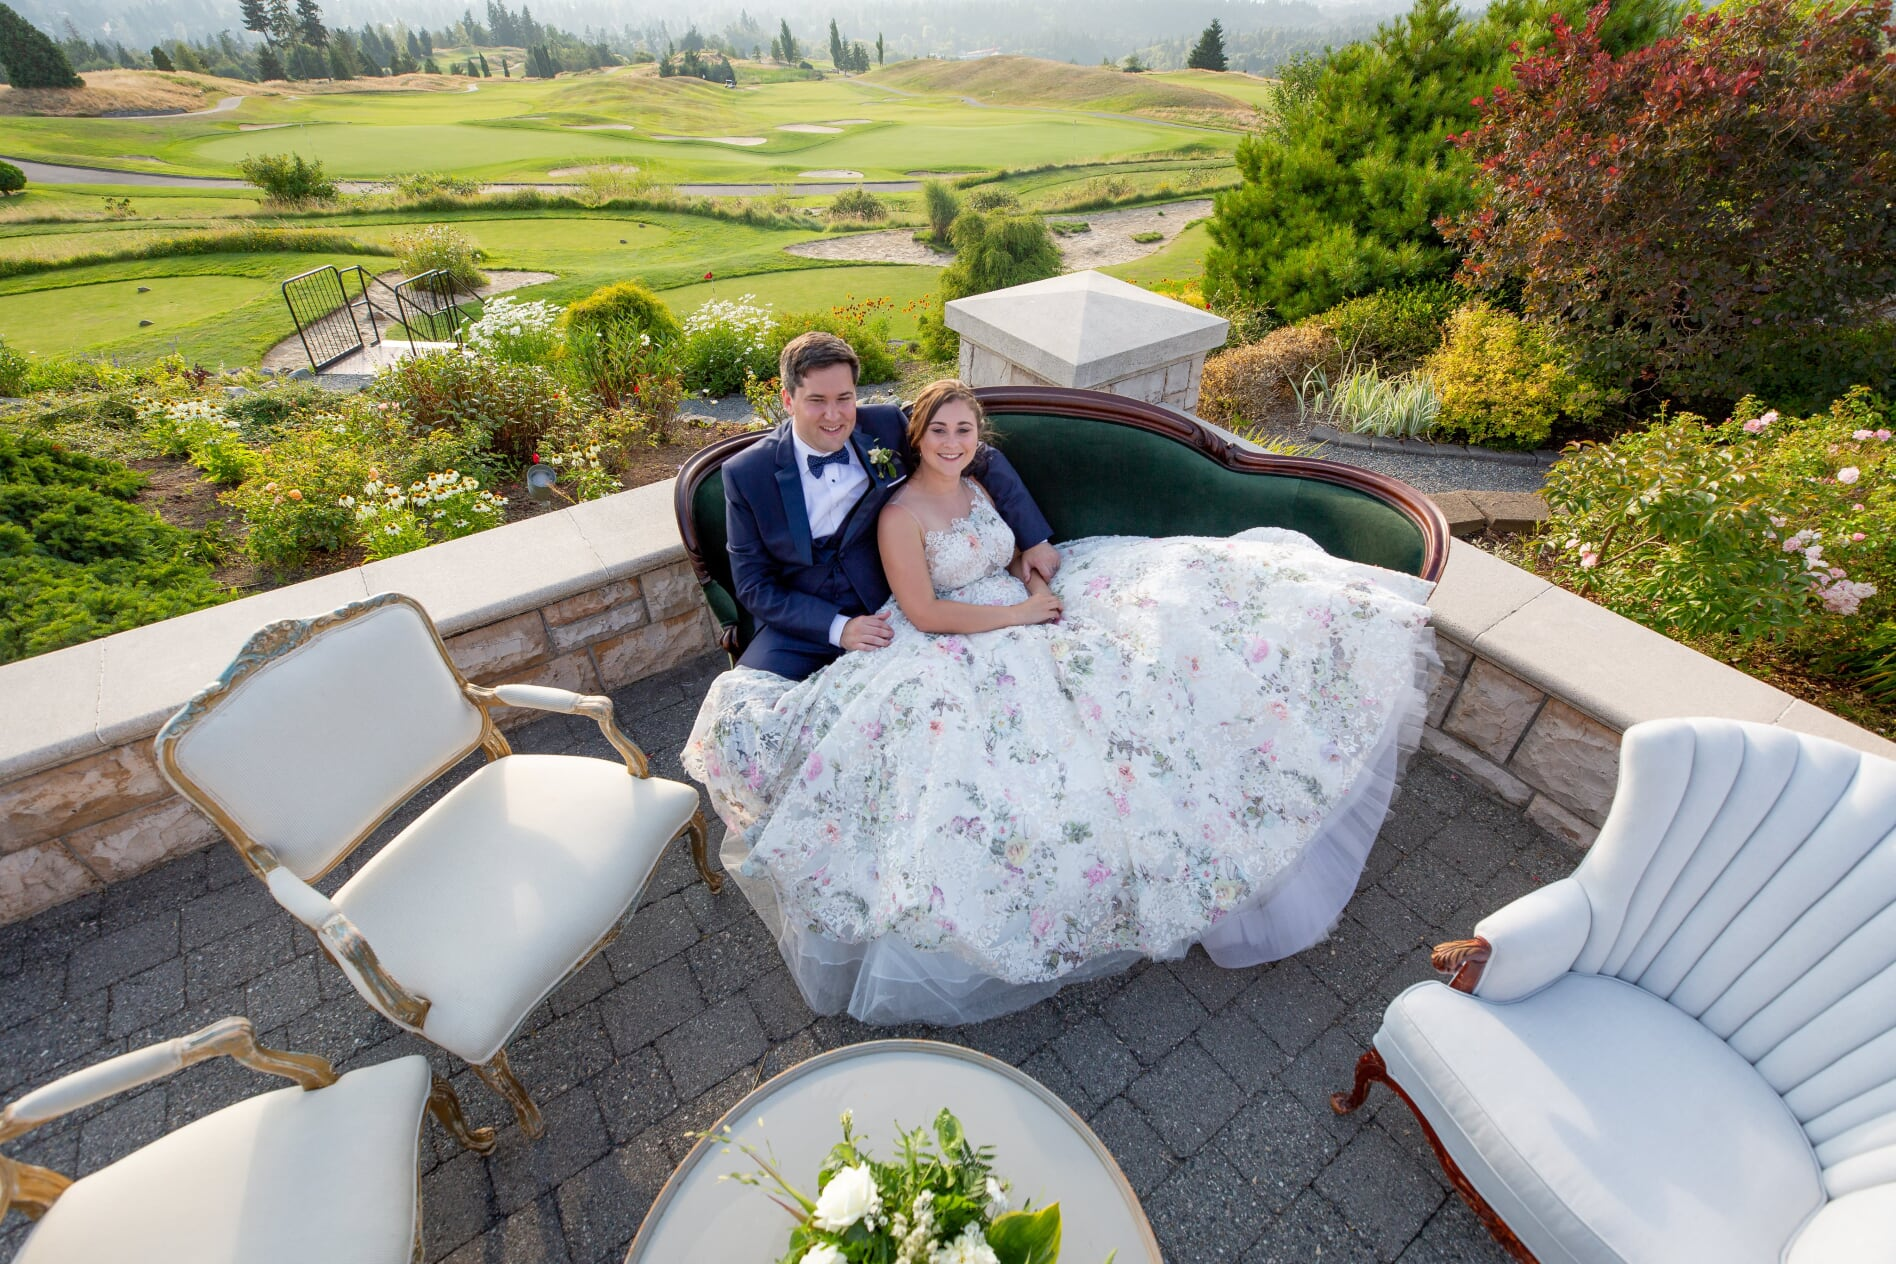 Groom and Bride in floral wedding dress sitting on velvet setee on veranda with gold course in background